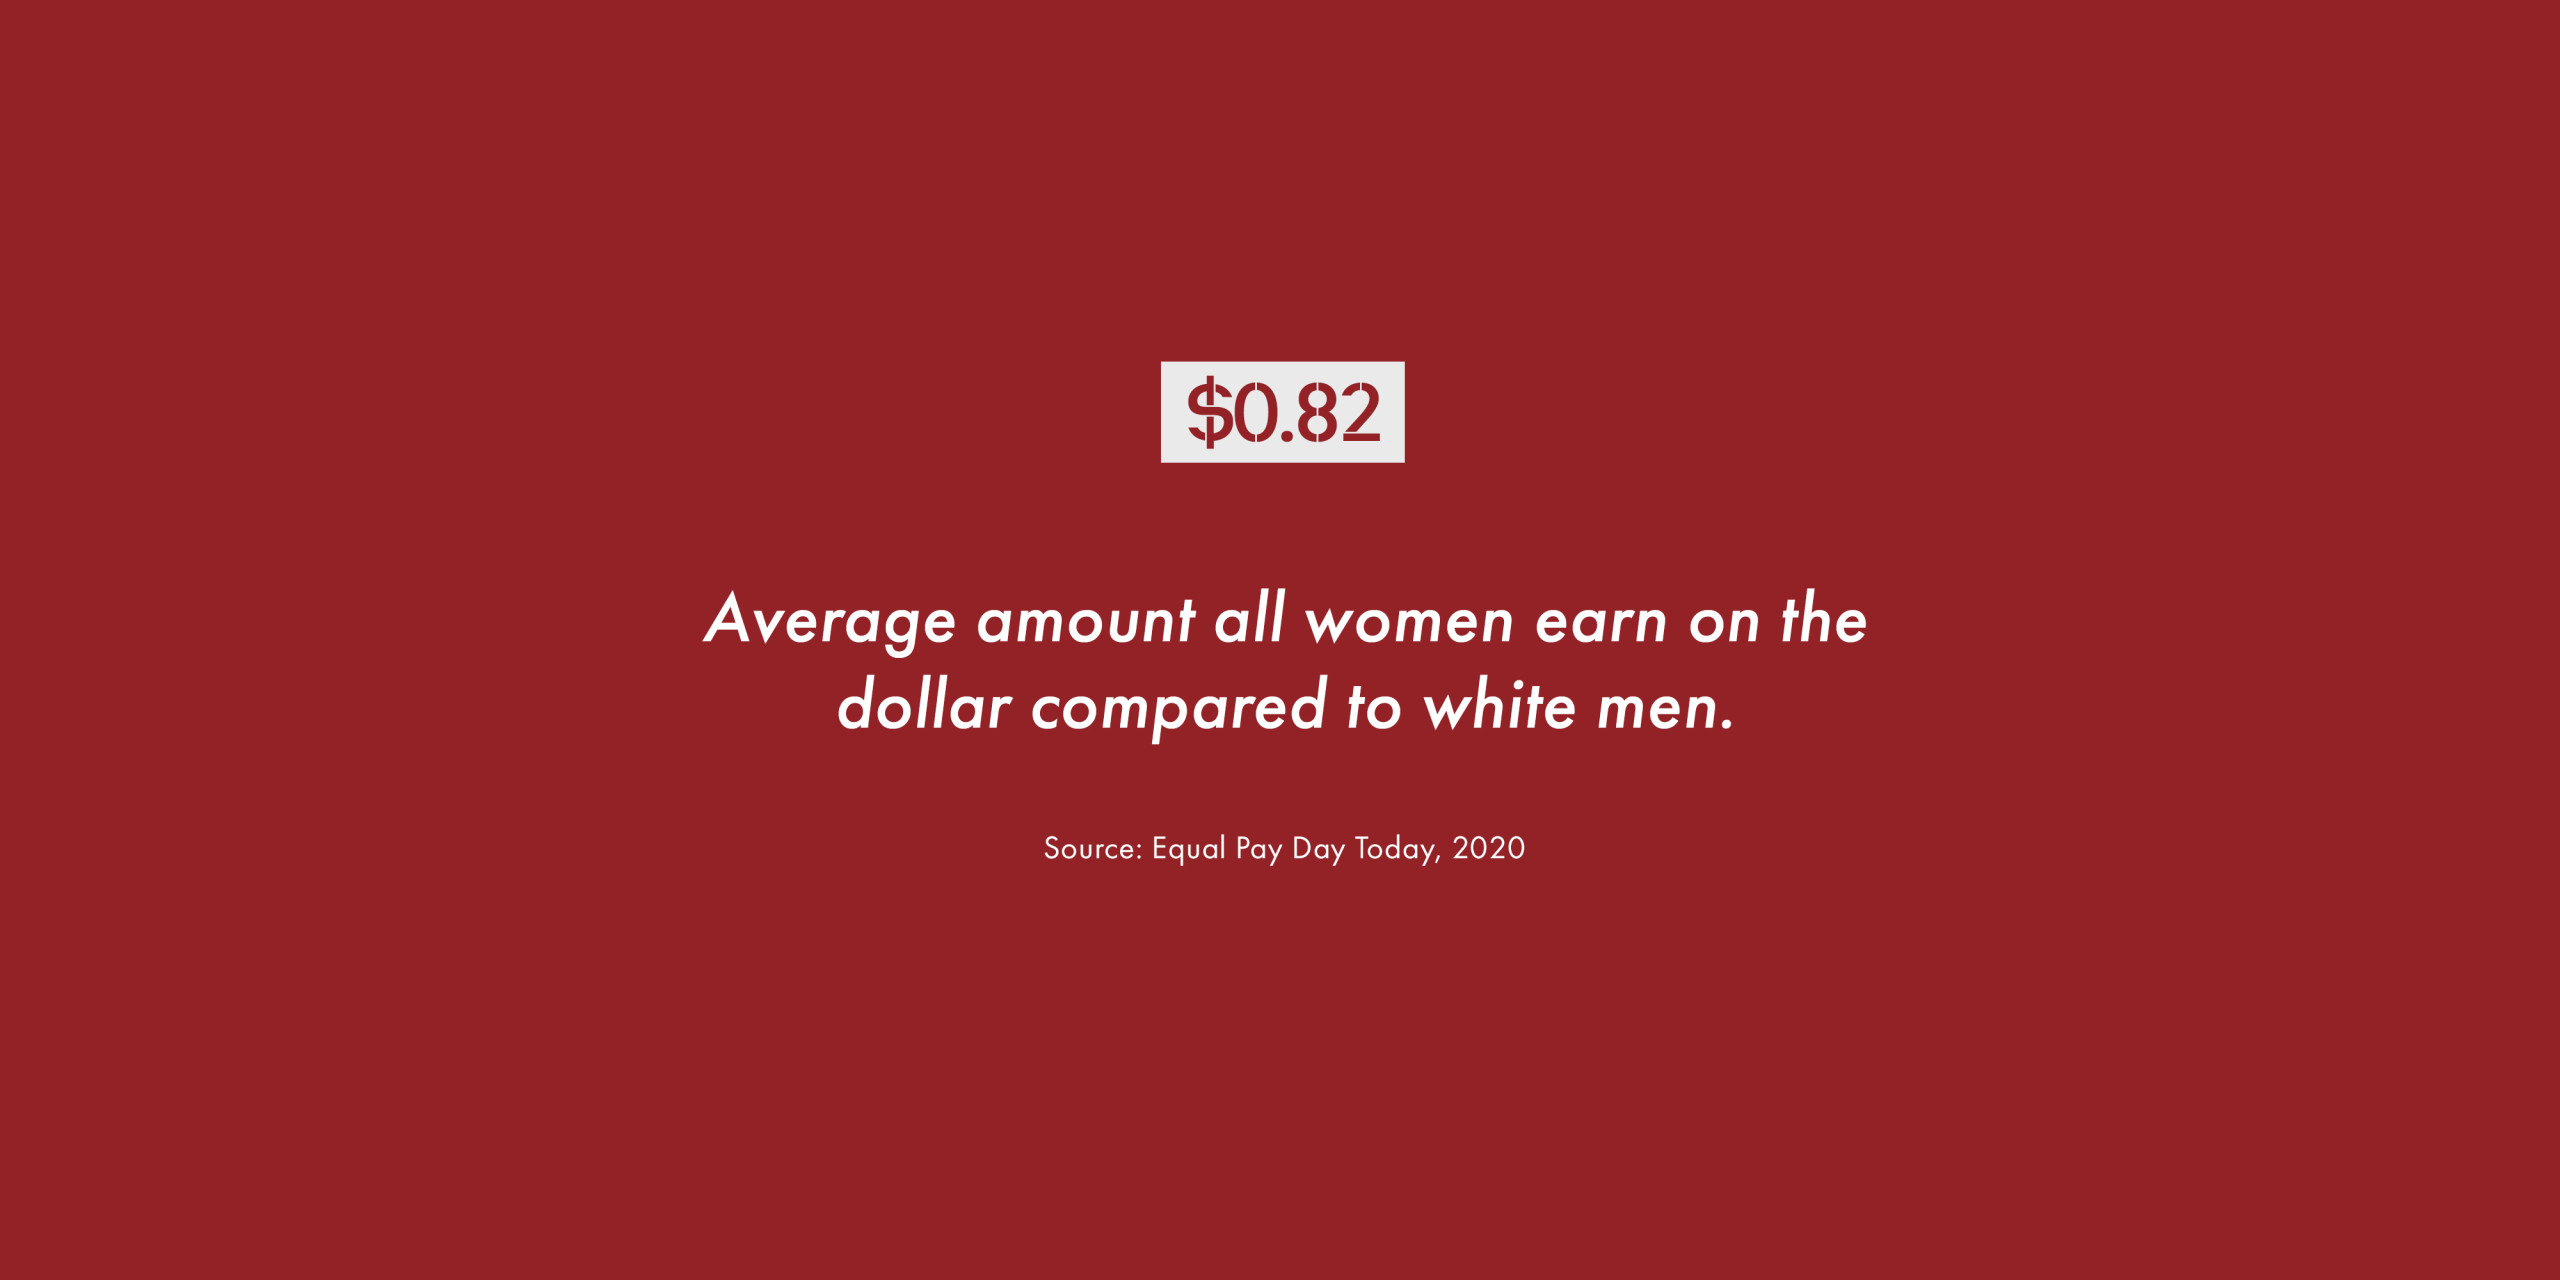 82 cents. Average amount all women earn on the dollar compared to white men.